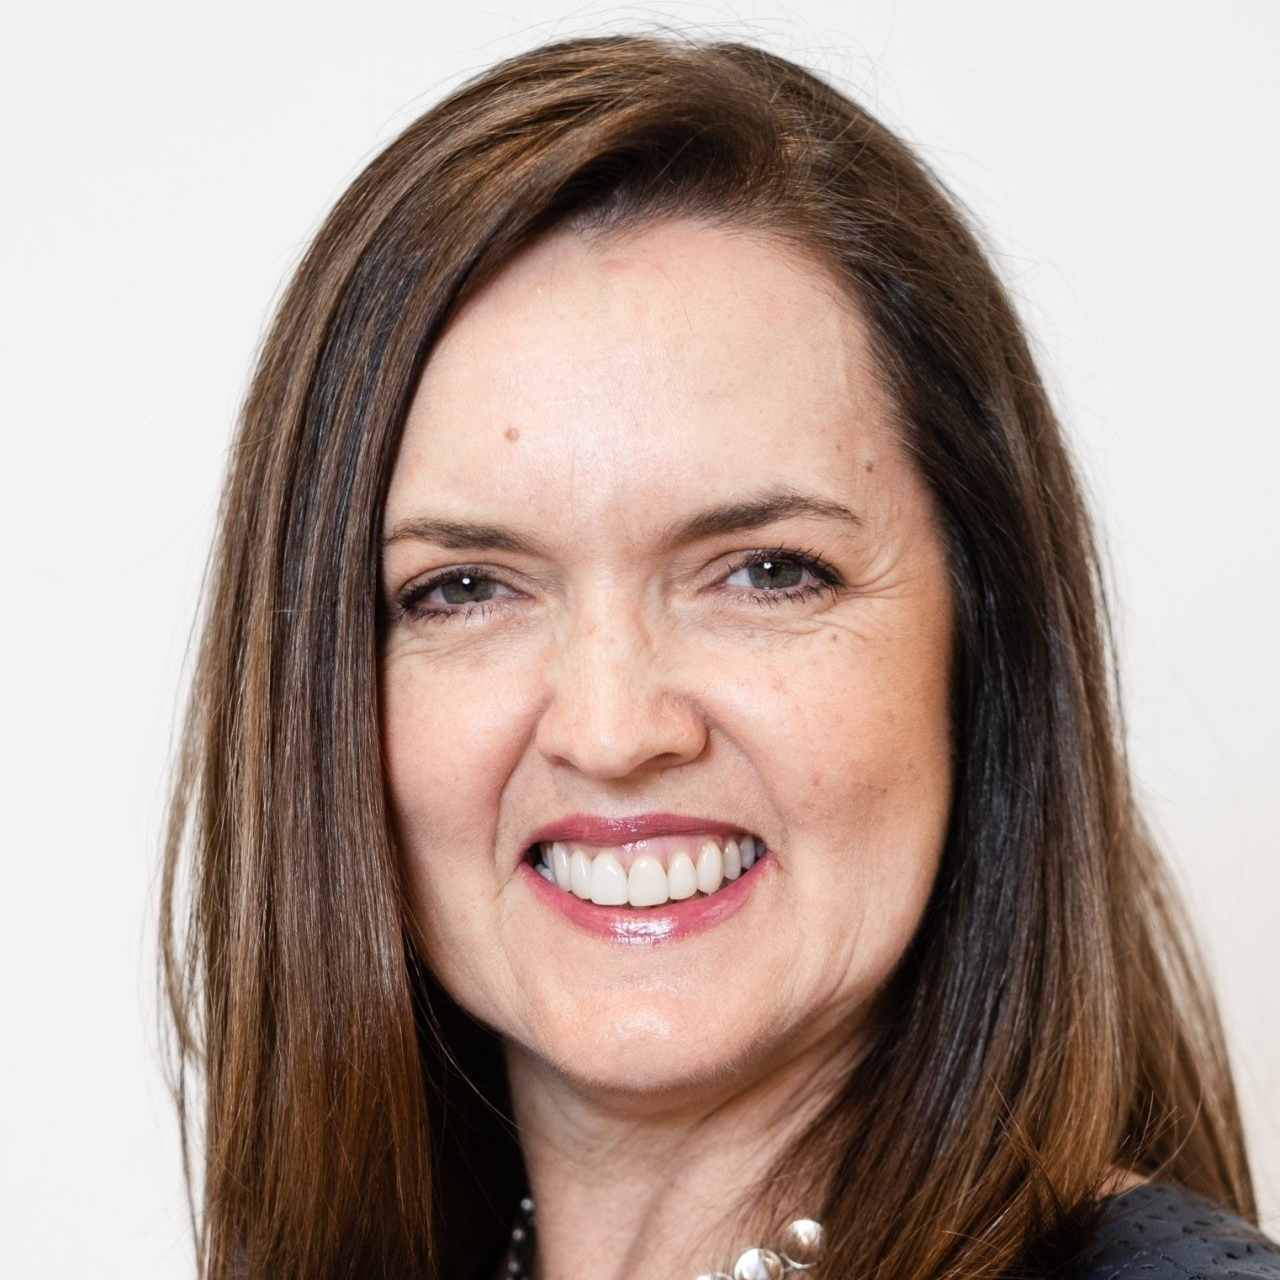 DEBRA TAYLOR - Founder and COO